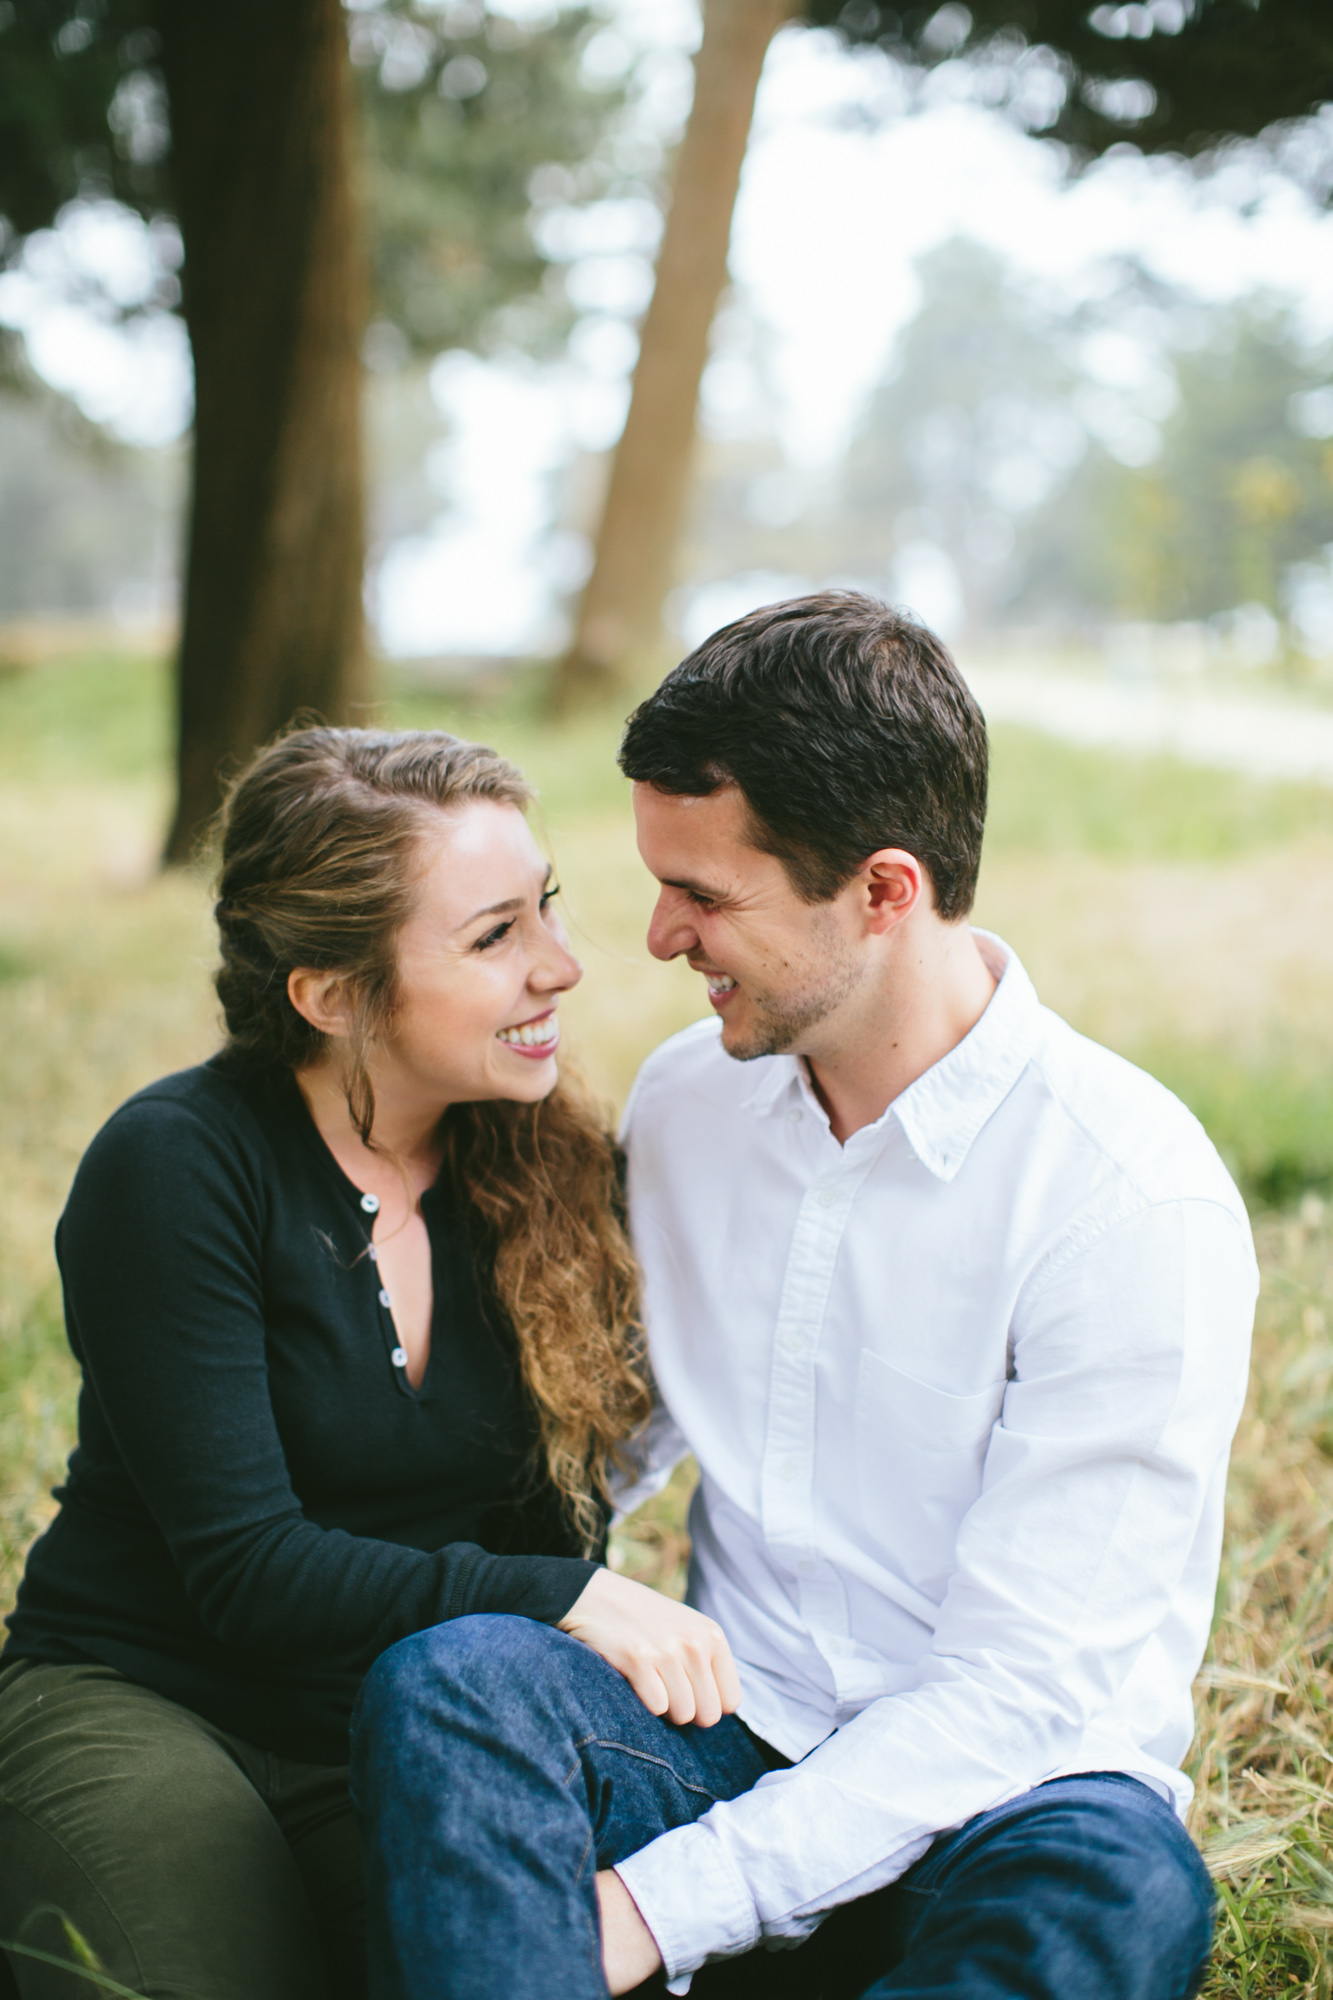 Emily+Paul-ENGAGEMENT_KellyBoitano-WEB-15